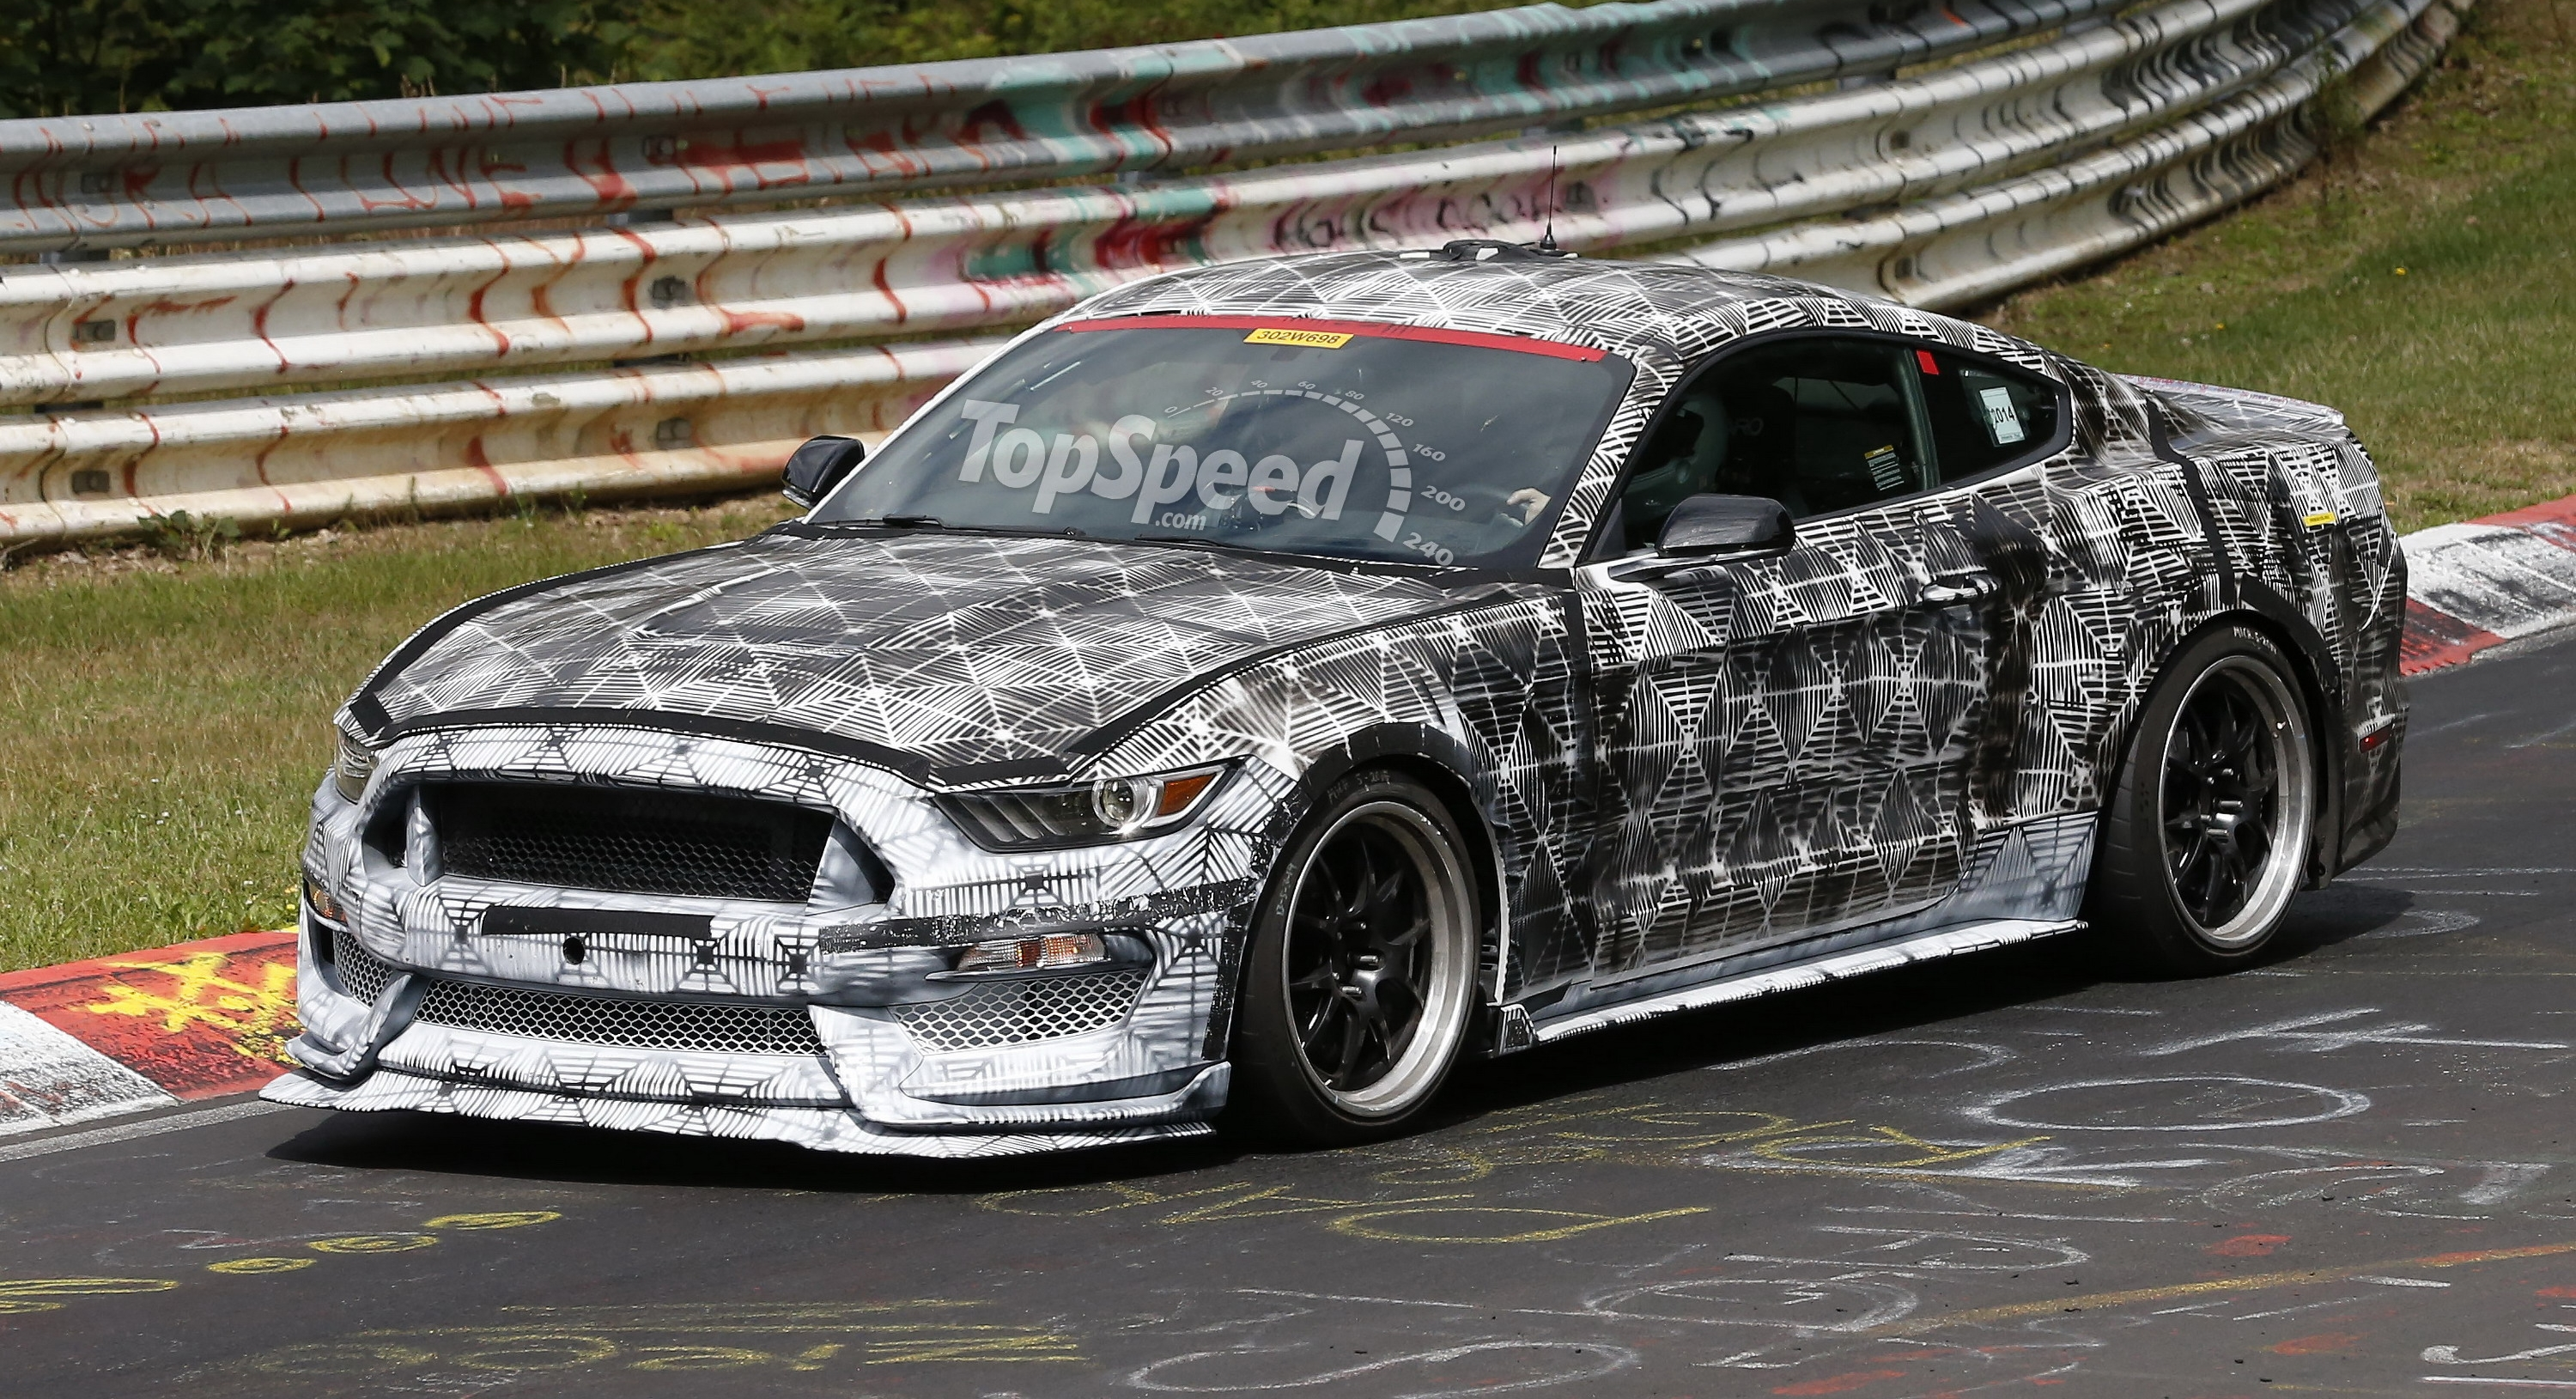 Ford Shelby Mustang Gt350 To Get A 5 2 Liter Flat Plane